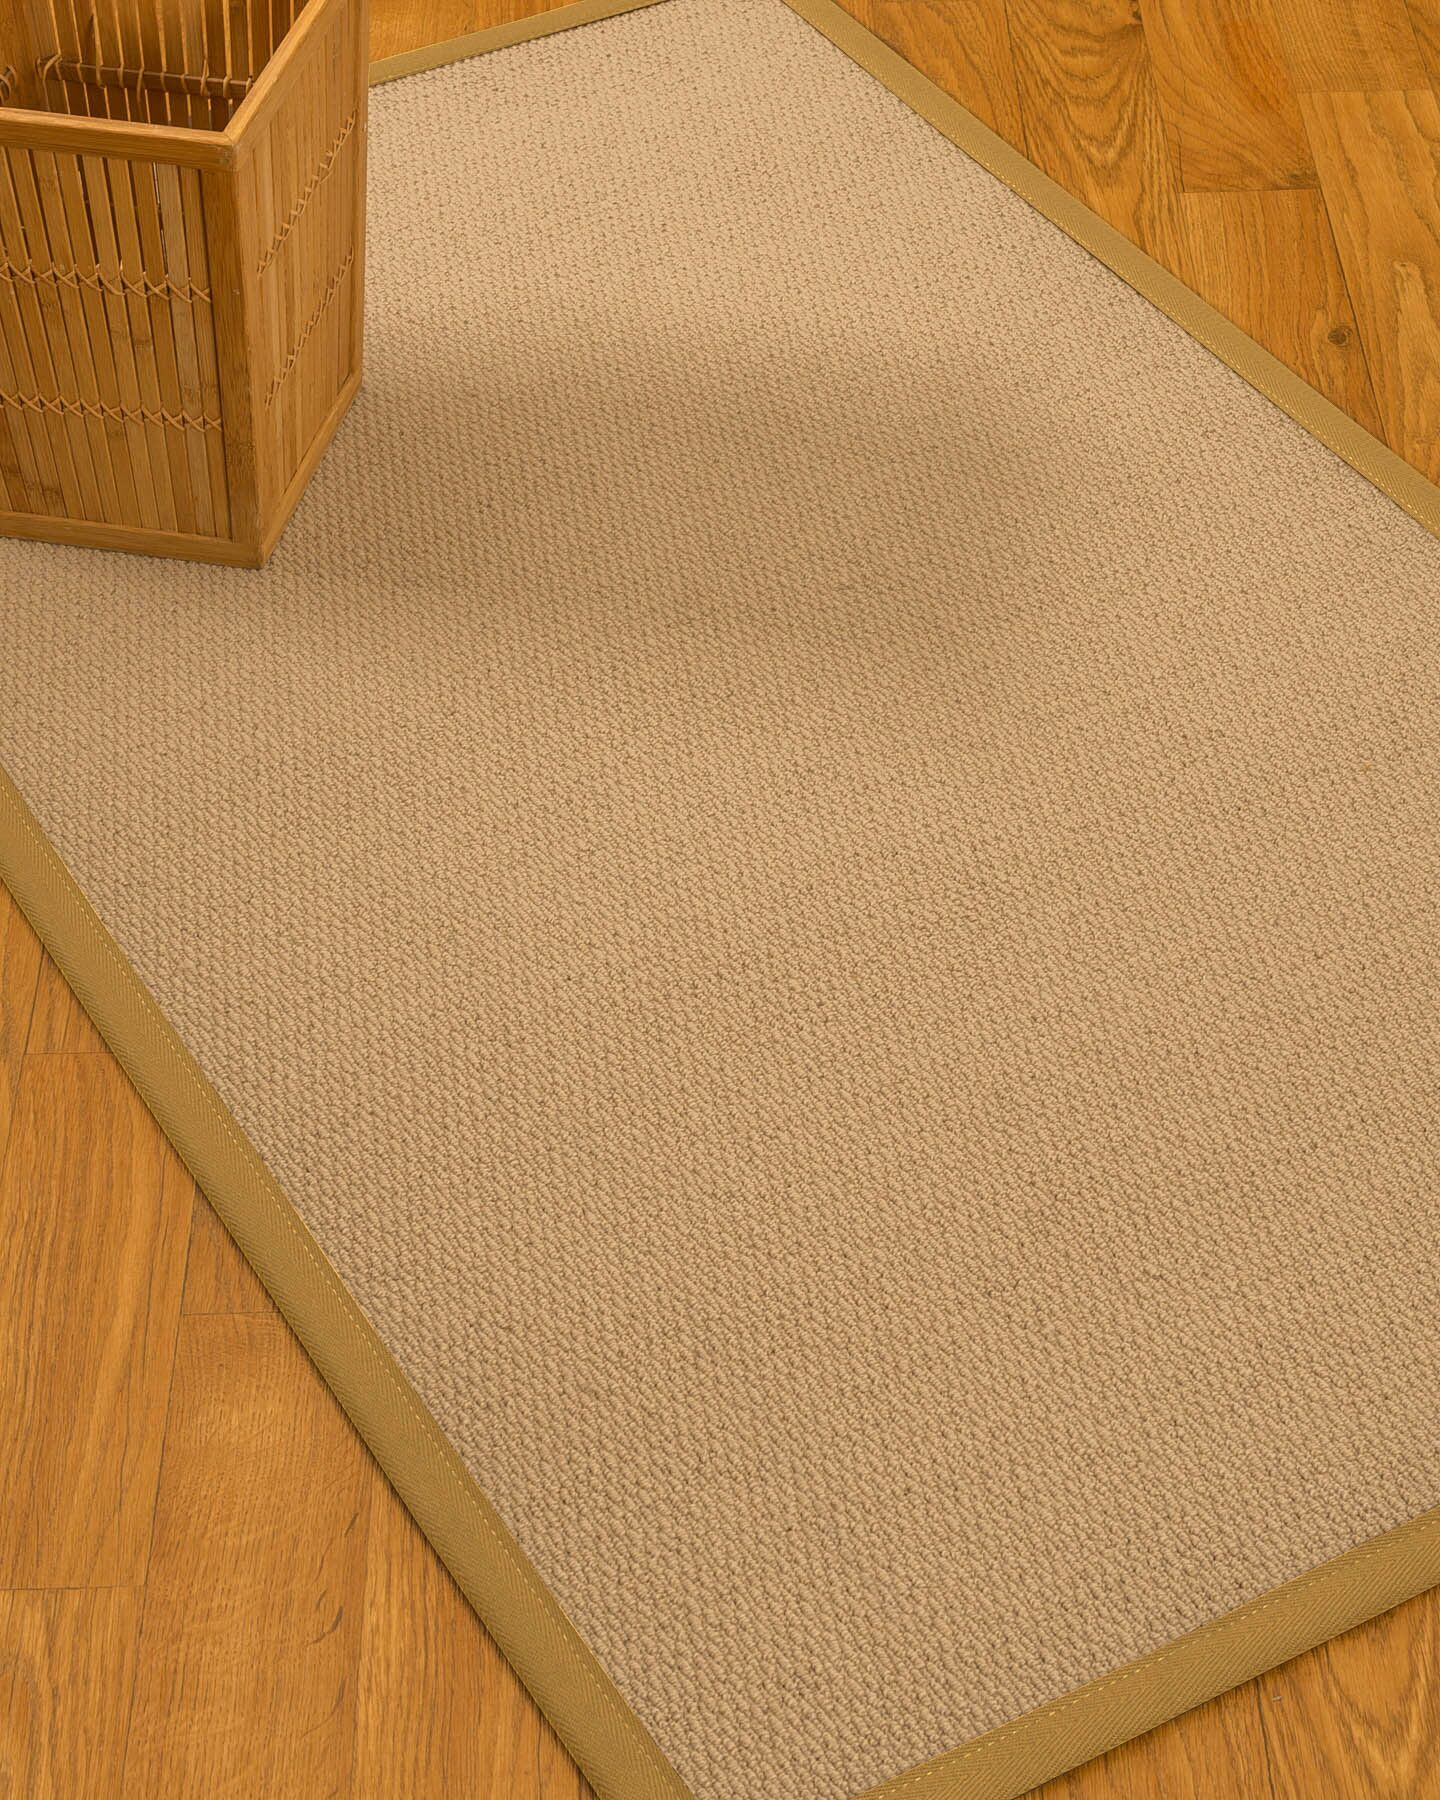 Chea Border Hand-Woven Wool Beige/Sage Area Rug Rug Size: Rectangle 6' x 9', Rug Pad Included: Yes